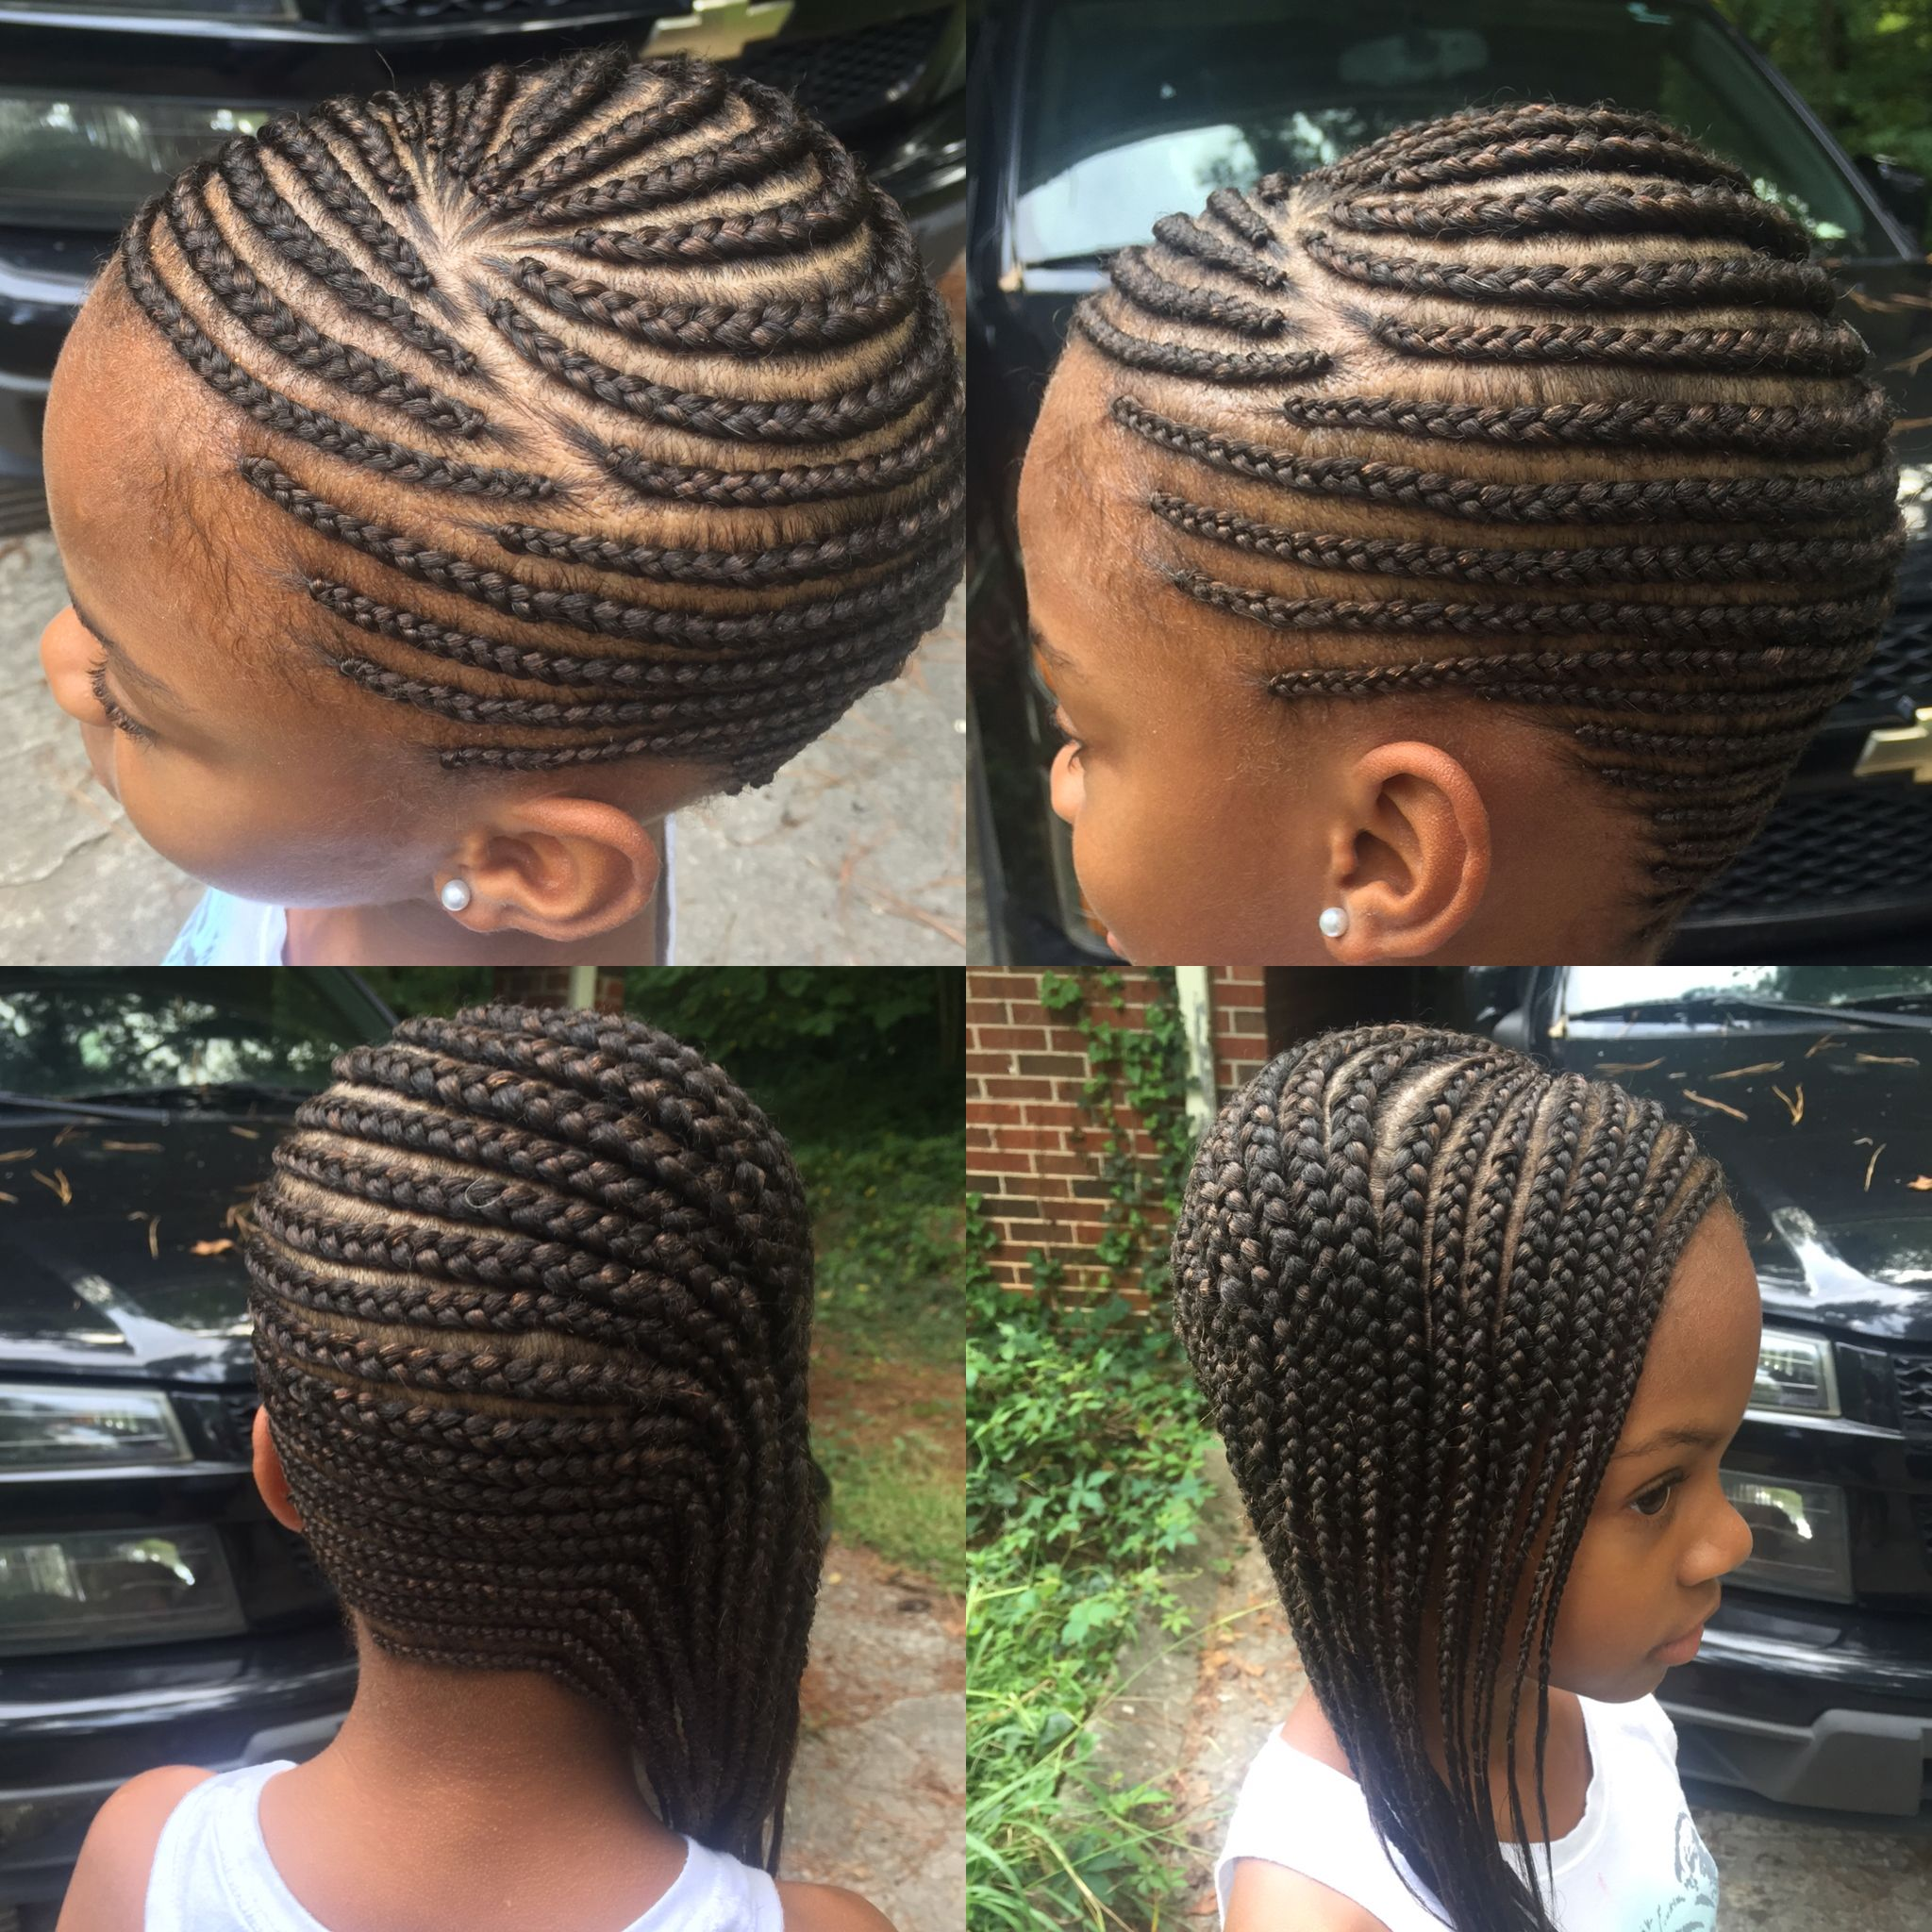 Cornrow Braids Styles Kids Hairstyles Black Beauty Braids Kids Kidshair Lemonadebraids Teamnatural Tribalbrai Hair Styles Braid Styles Kids Hairstyles